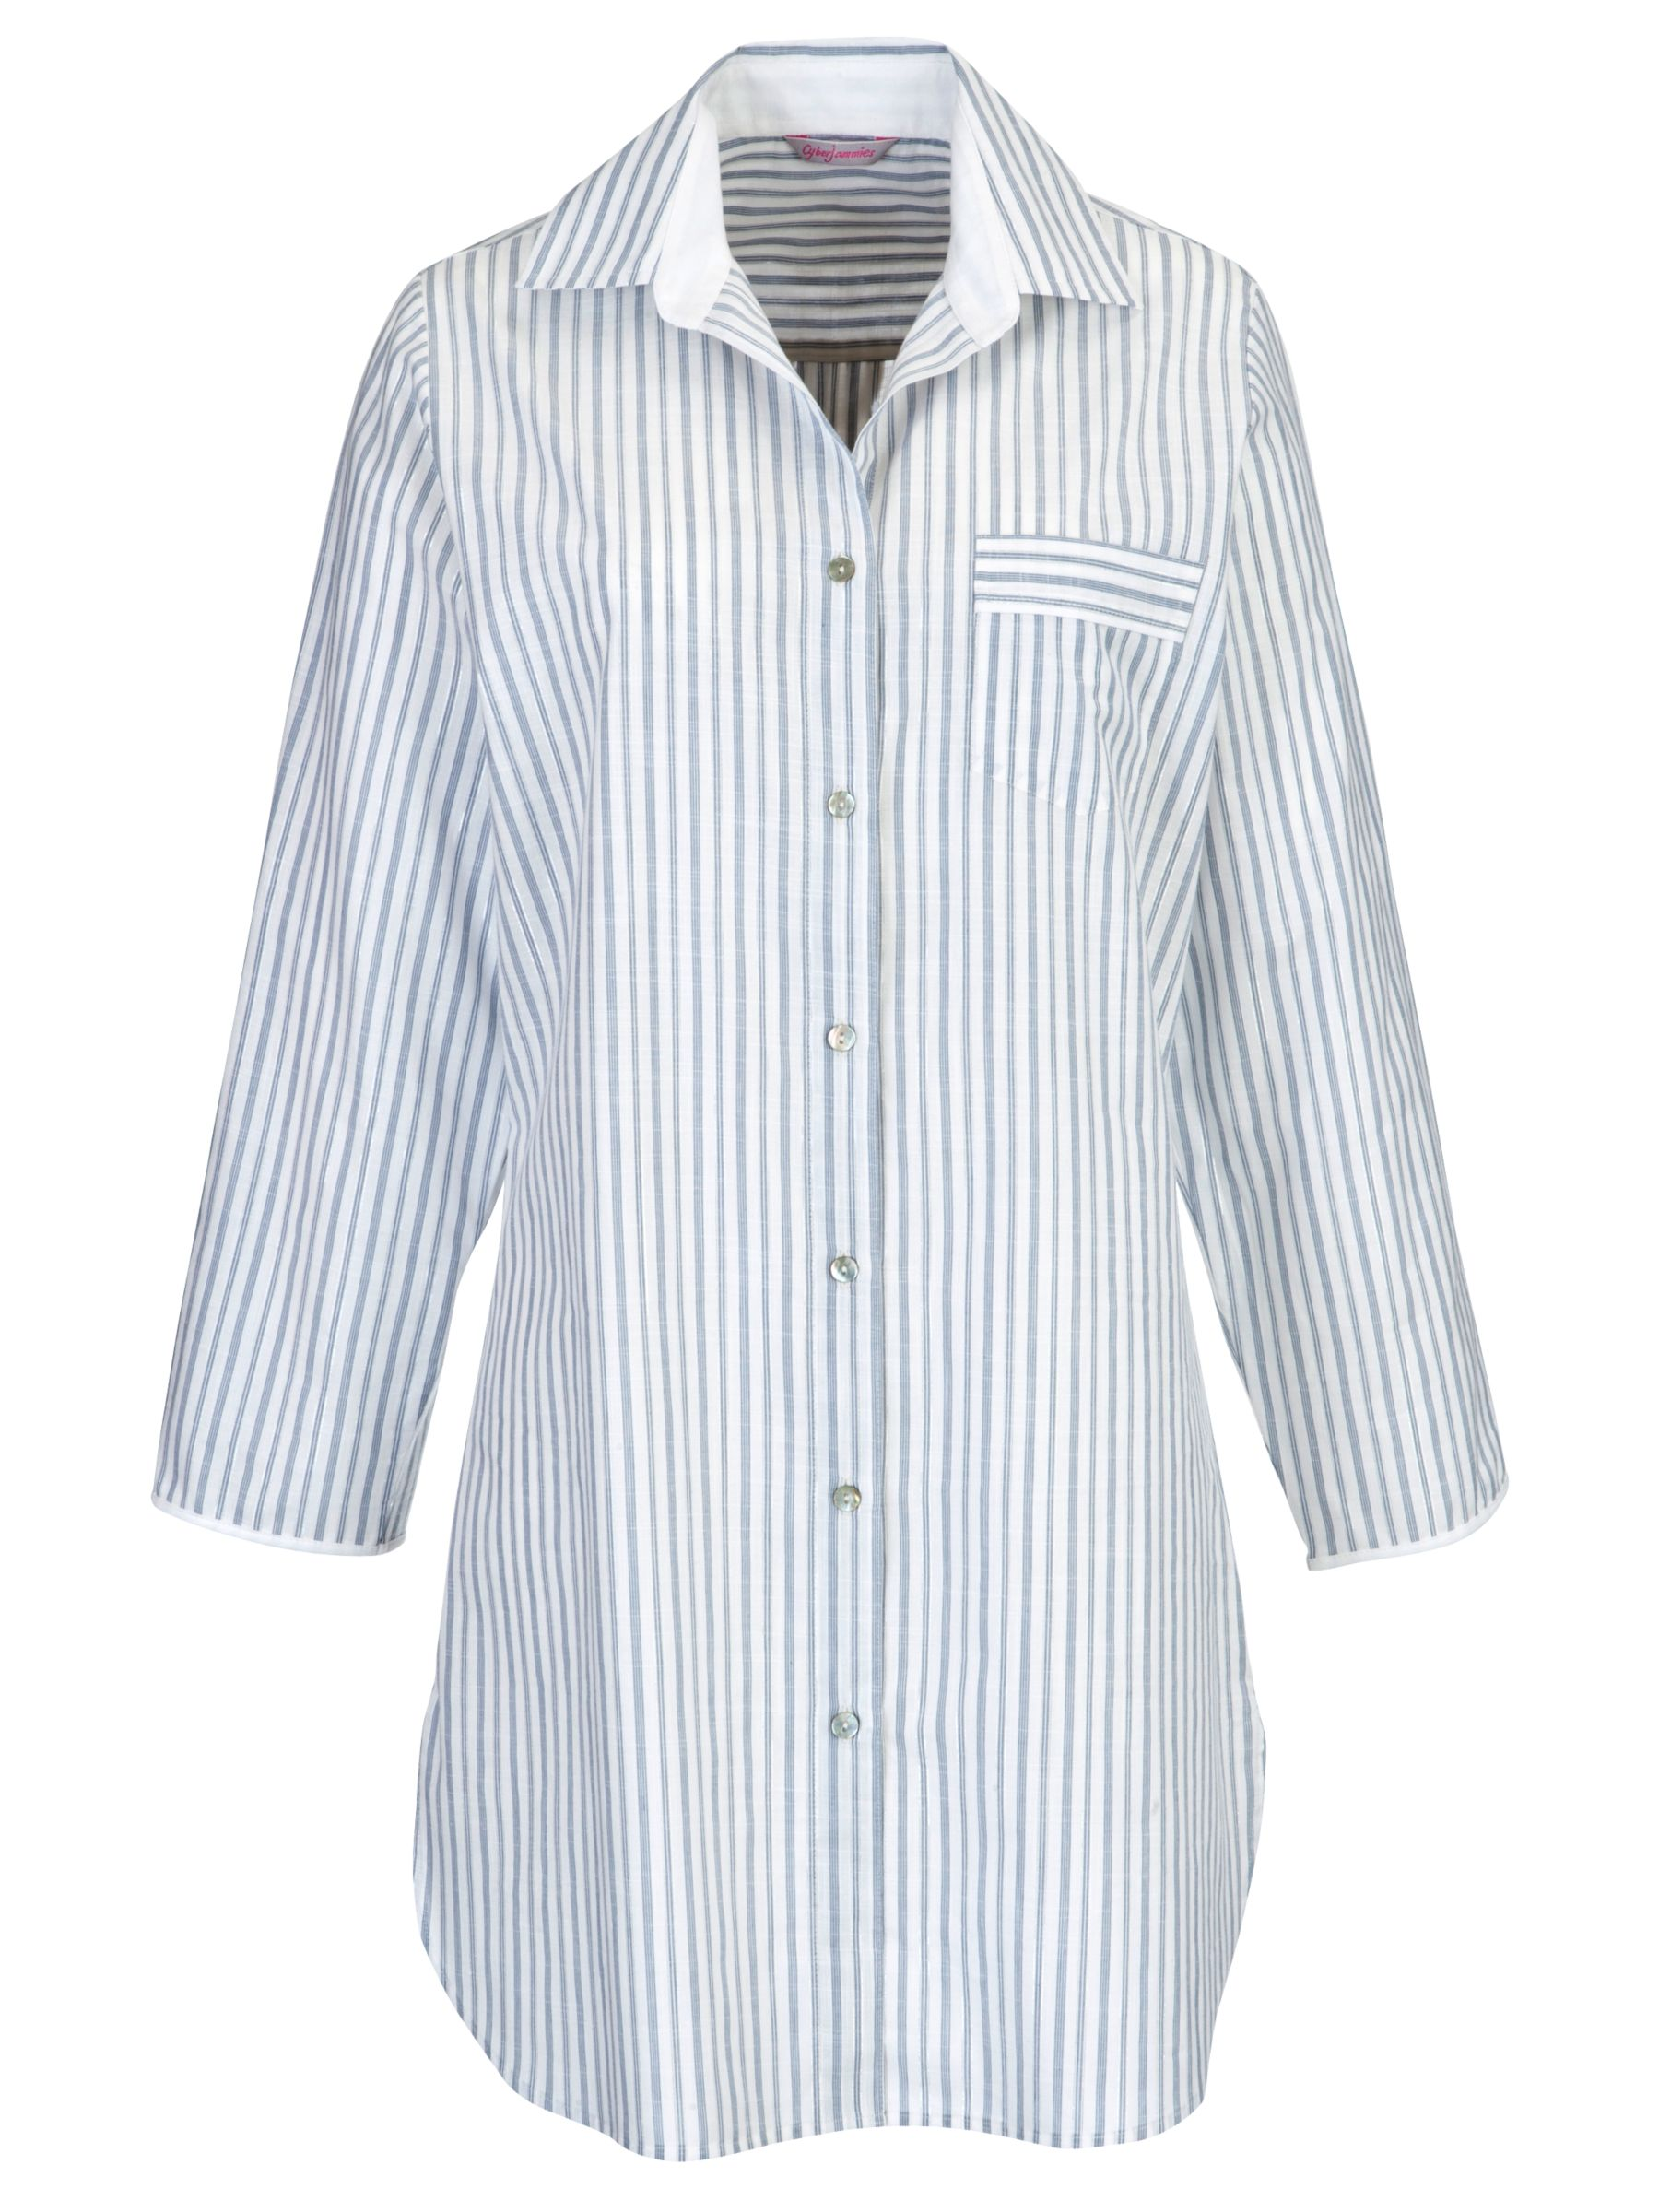 Cyberjammies China Blue Stripe Nightshirt, Blue/White